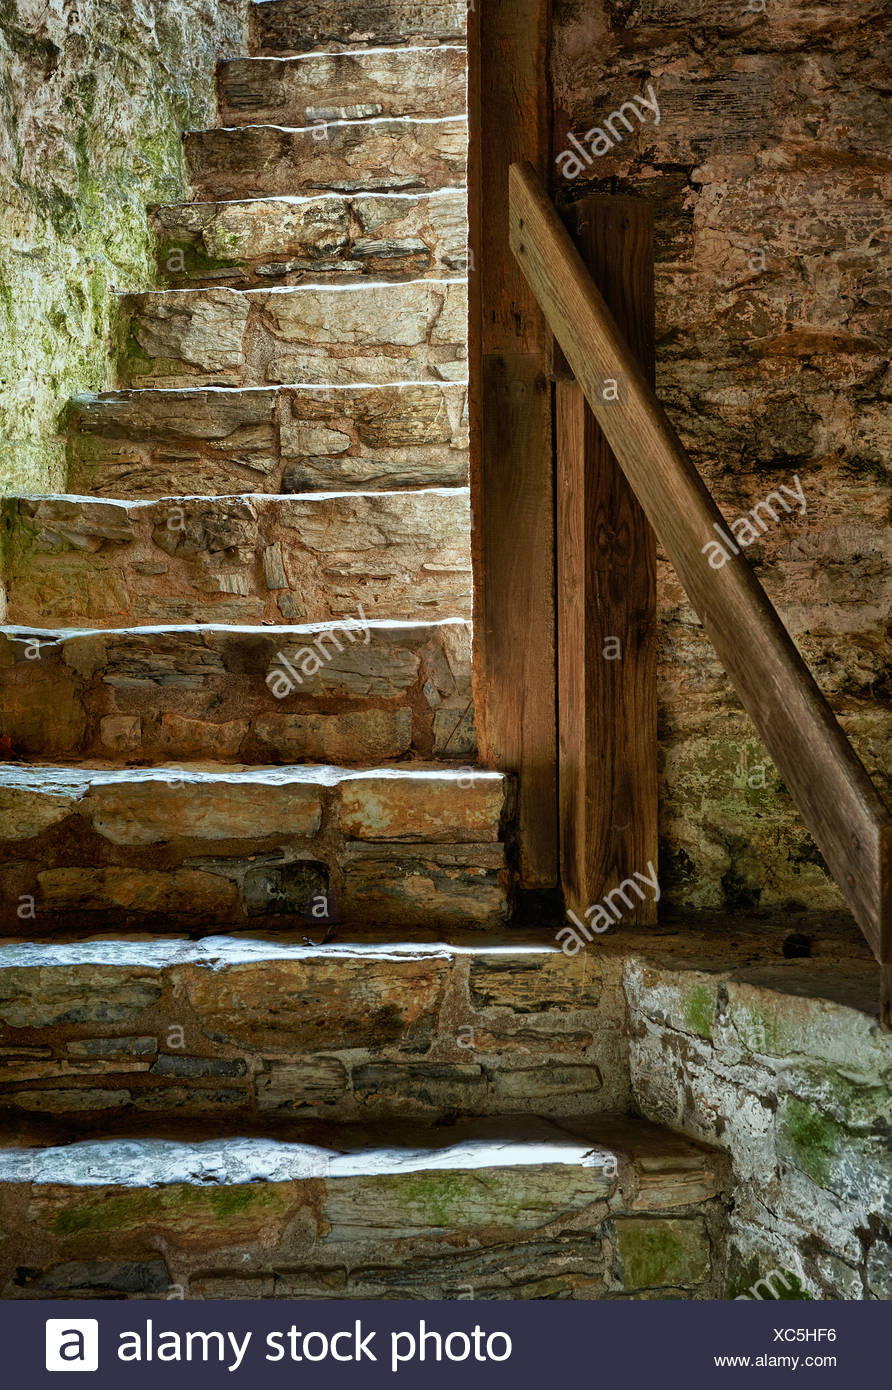 Stone stairs. - Stock Image